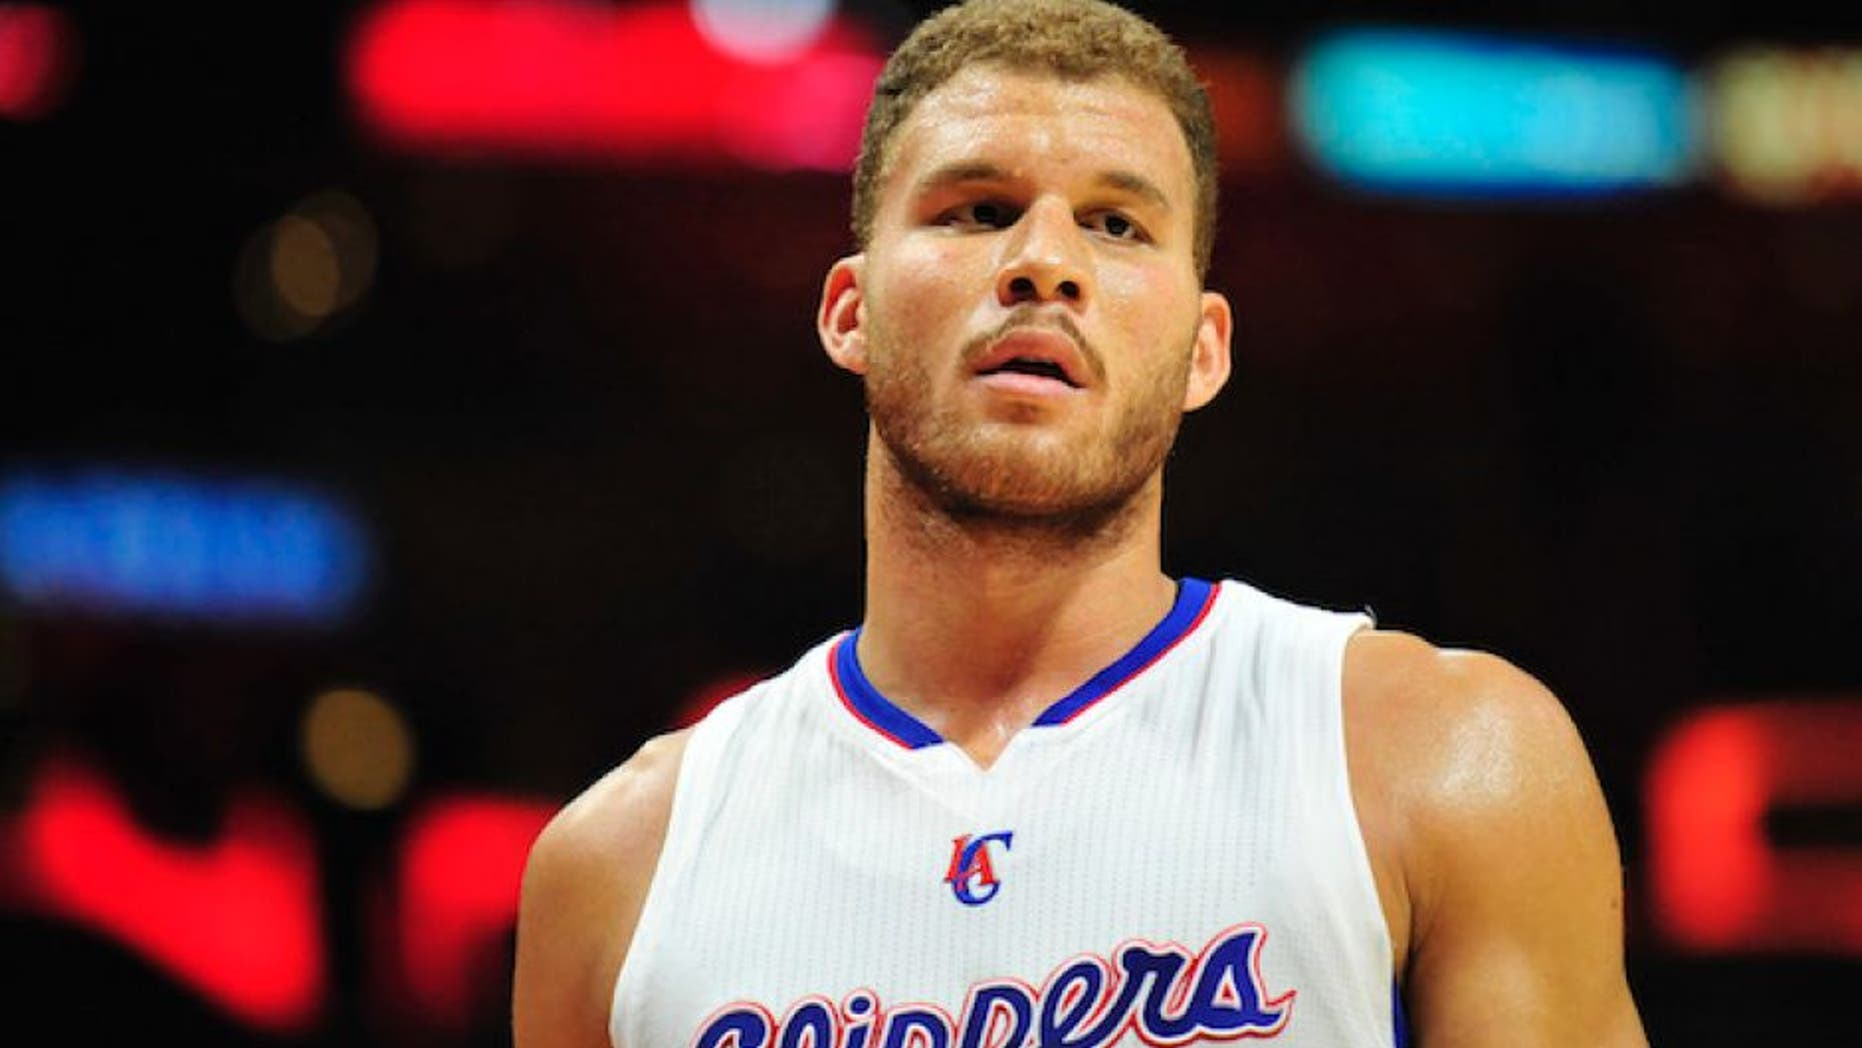 November 15, 2014; Los Angeles, CA, USA; Los Angeles Clippers forward Blake Griffin (32) during a stoppage in play against the Phoenix Suns during the second half at Staples Center. Mandatory Credit: Gary A. Vasquez-USA TODAY Sports